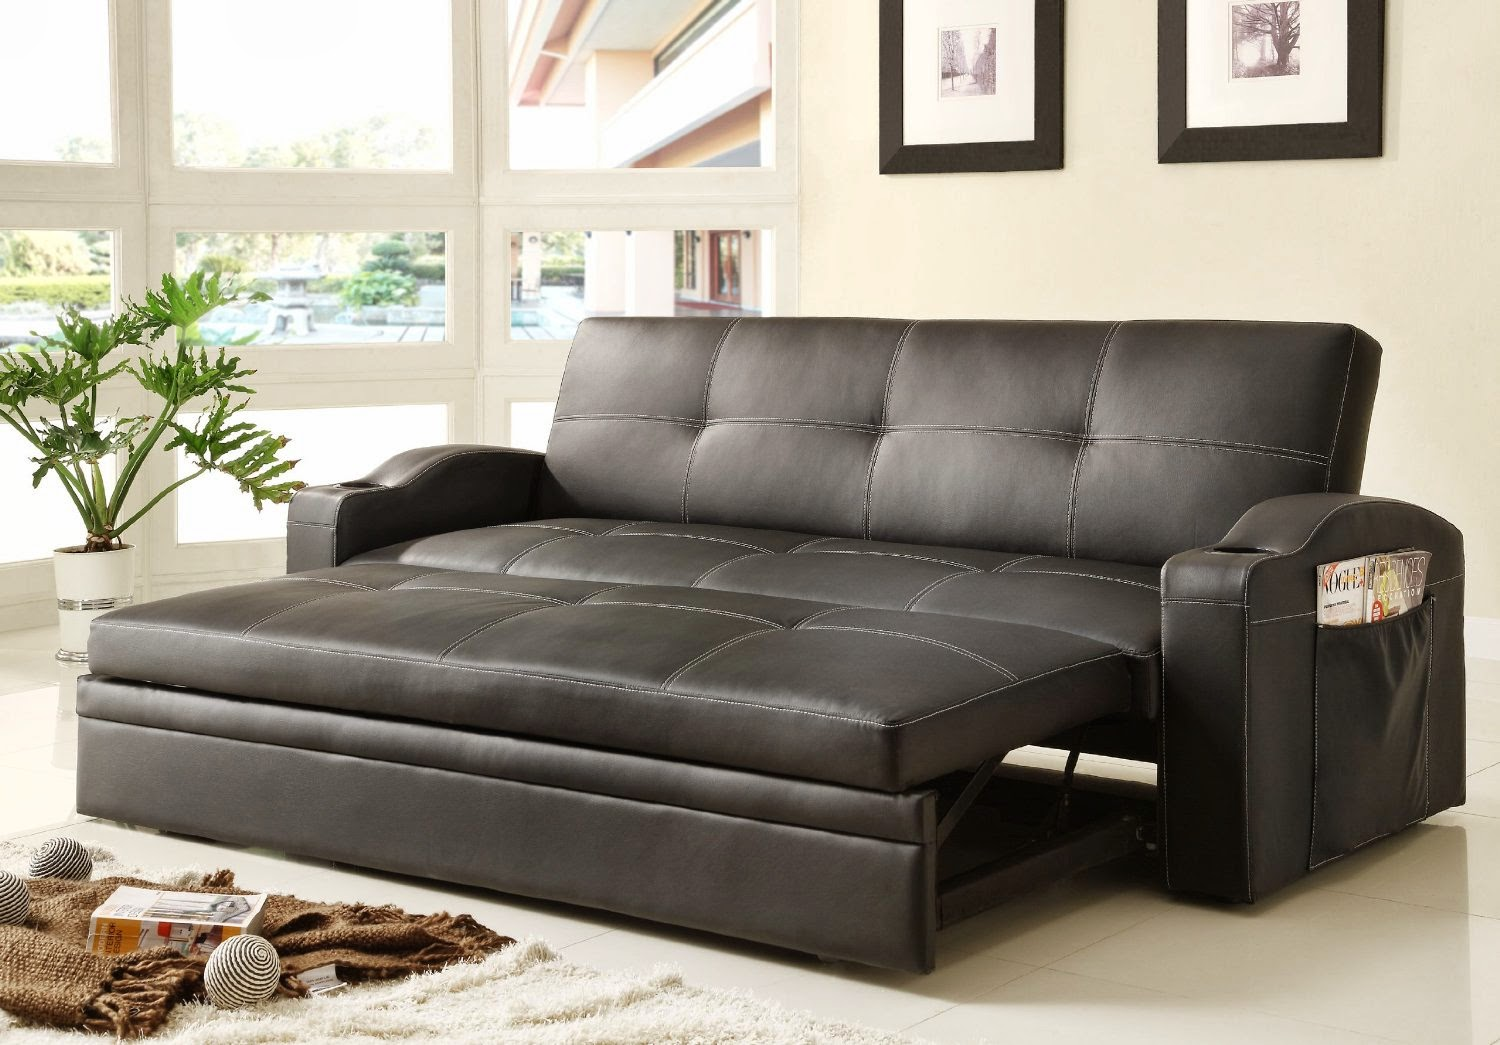 Best Homelegance 4803blk Sofa Bed Review Best Homelegance